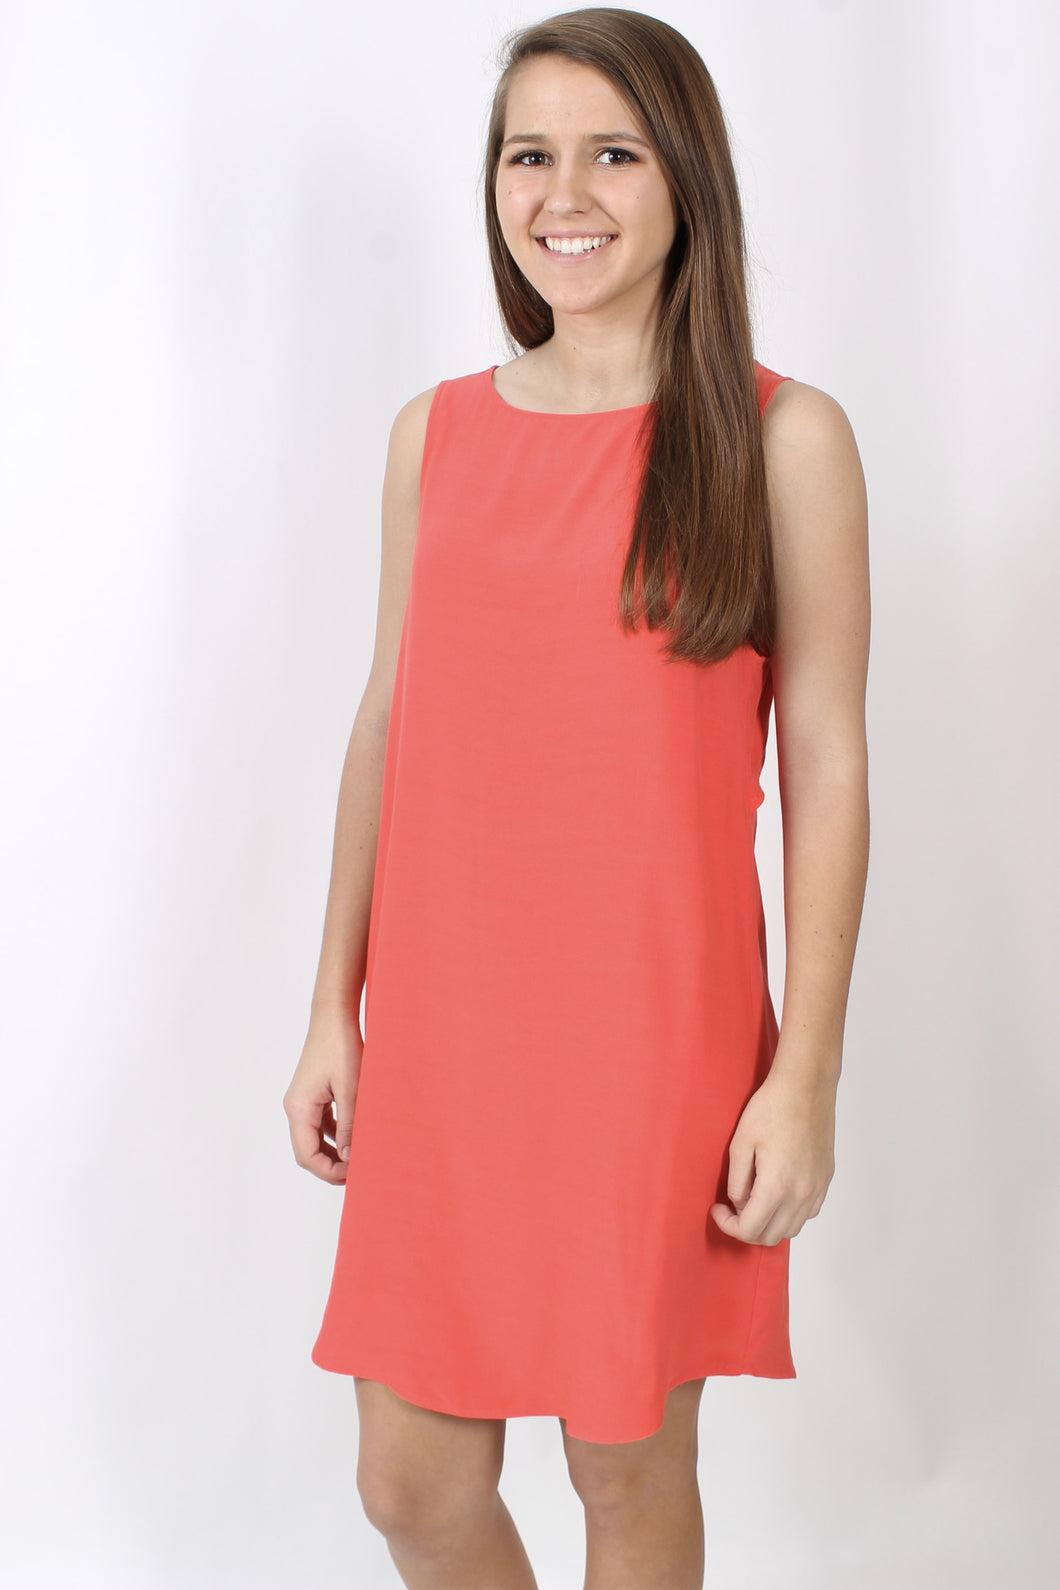 Valentine Red Dress- BB Dakota Jodi Dress Front